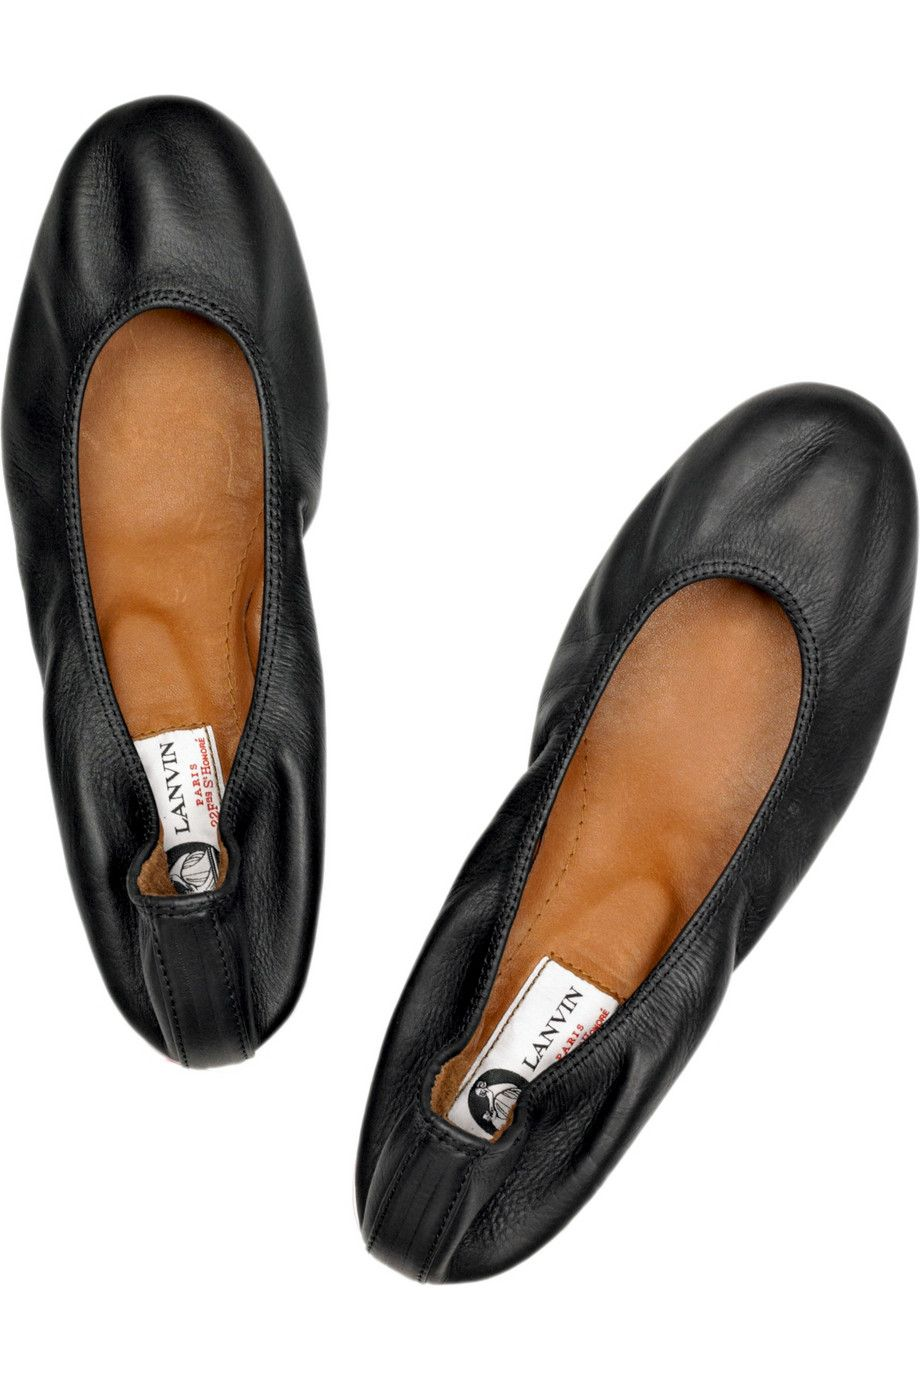 d50b8f51912e Lanvin ballerina flats. Hope these aren t as comfy as they look so I don t  fall I love with them